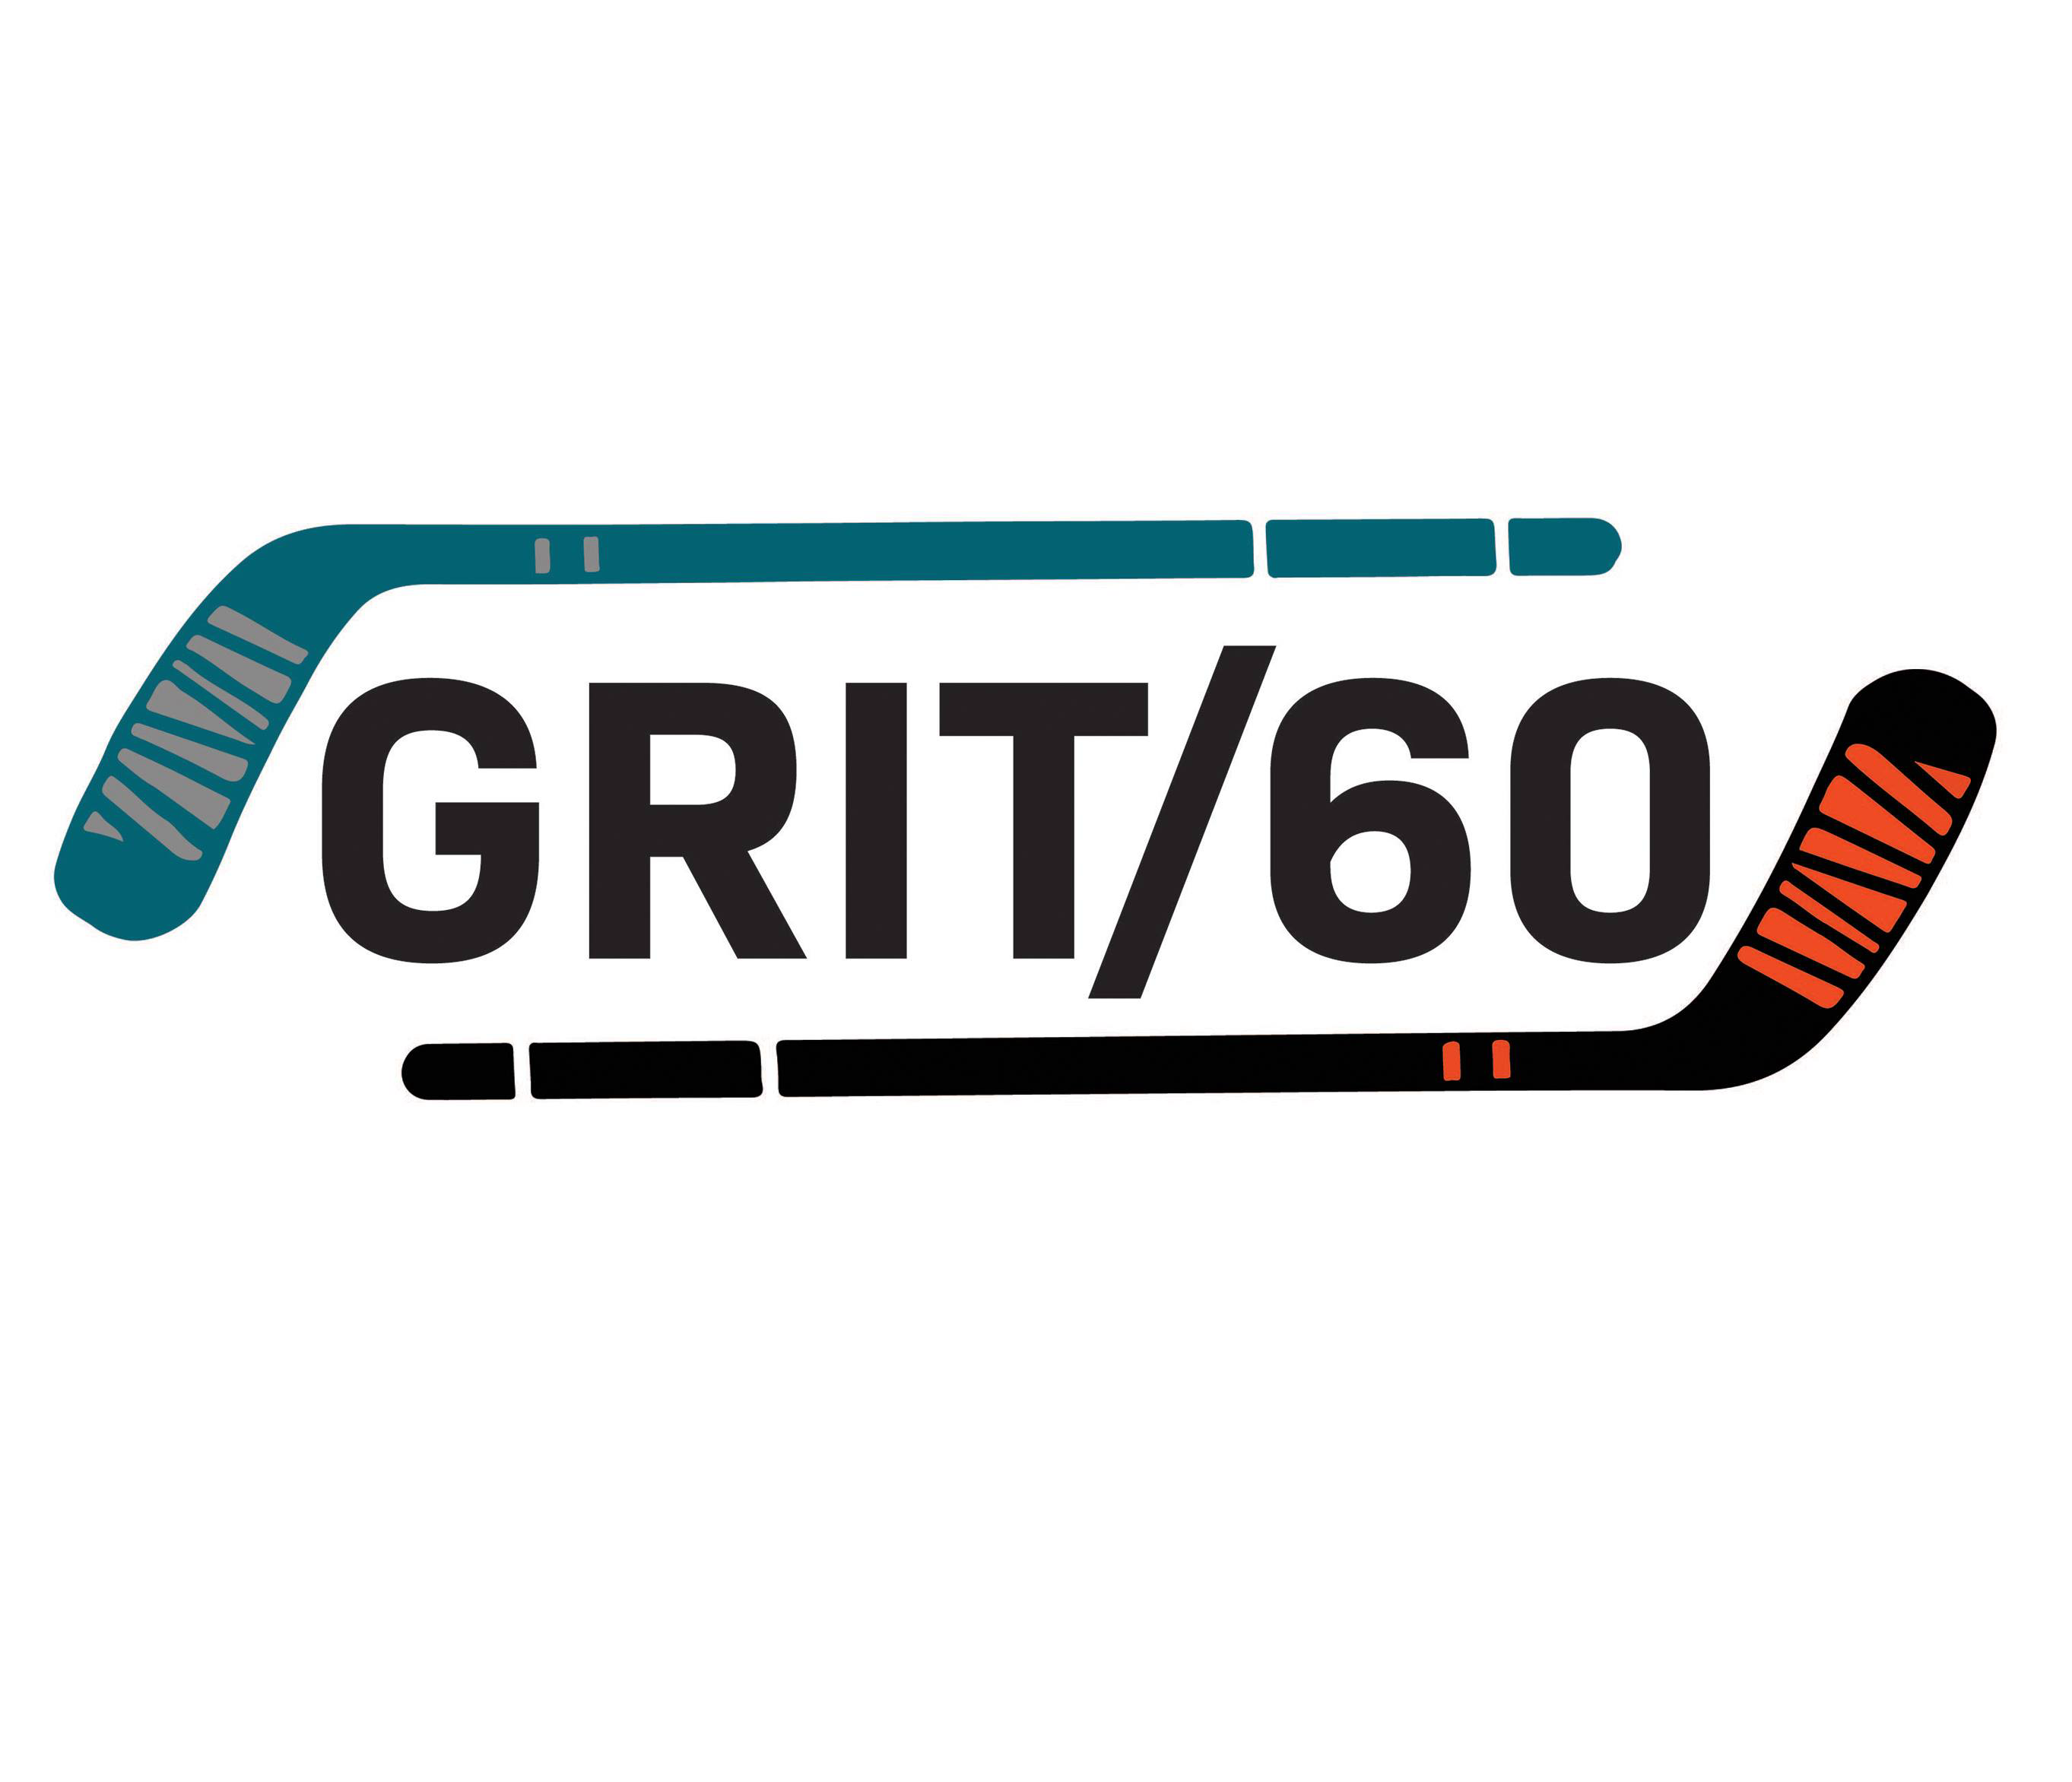 Winnipeg Jets - Grit/60 Podcast - EP53 - S1 Featuring Matt Arp of The Ice Analytics Podcast